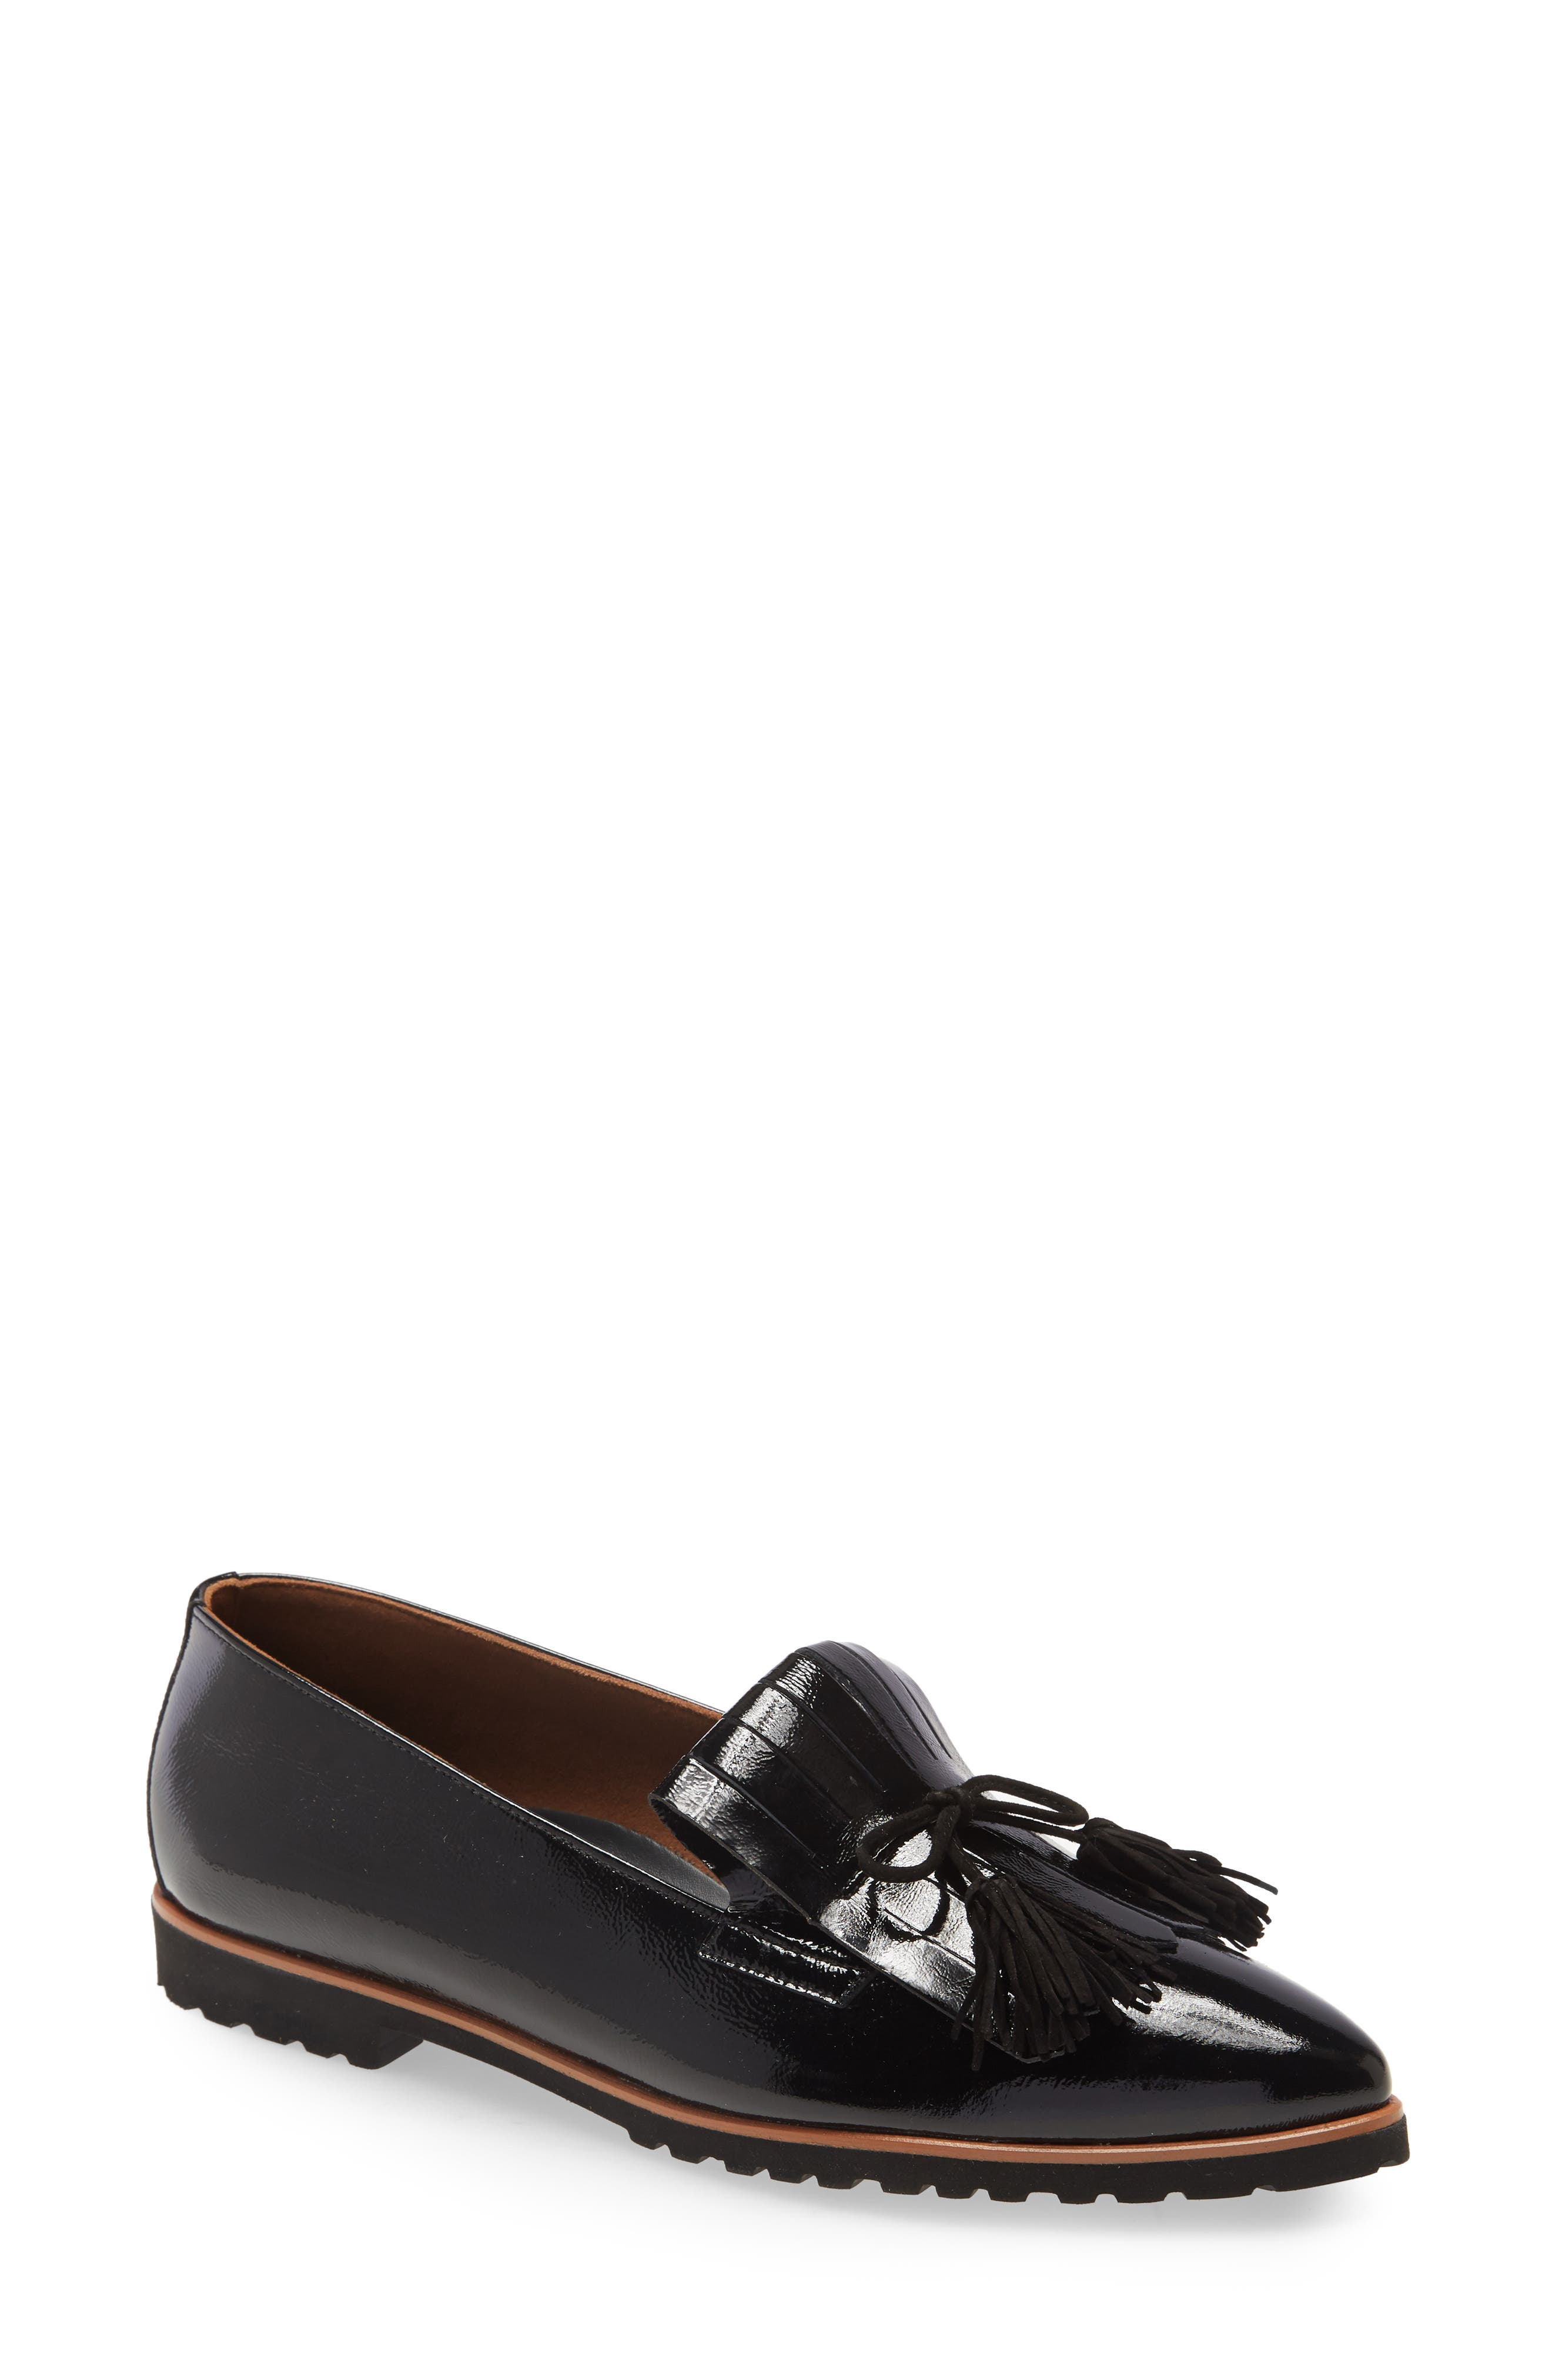 Image of Paul Green Diana Kiltie Fringe Pointed Toe Loafer